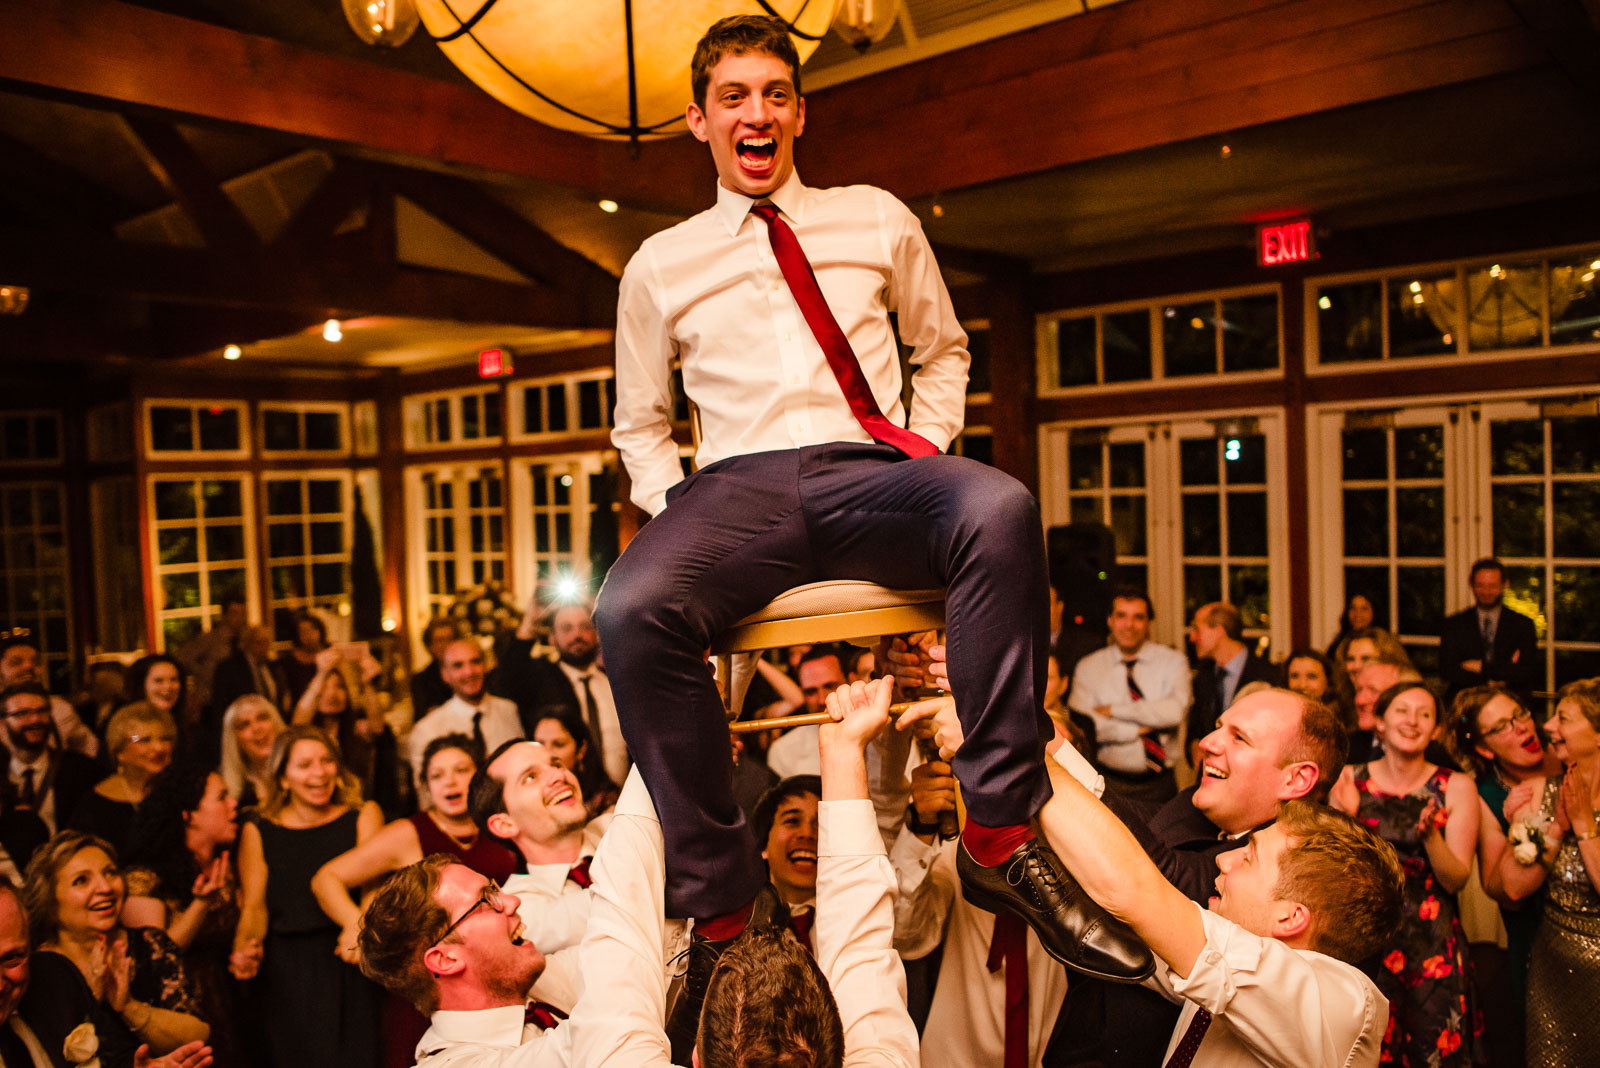 Groom hora chair dance